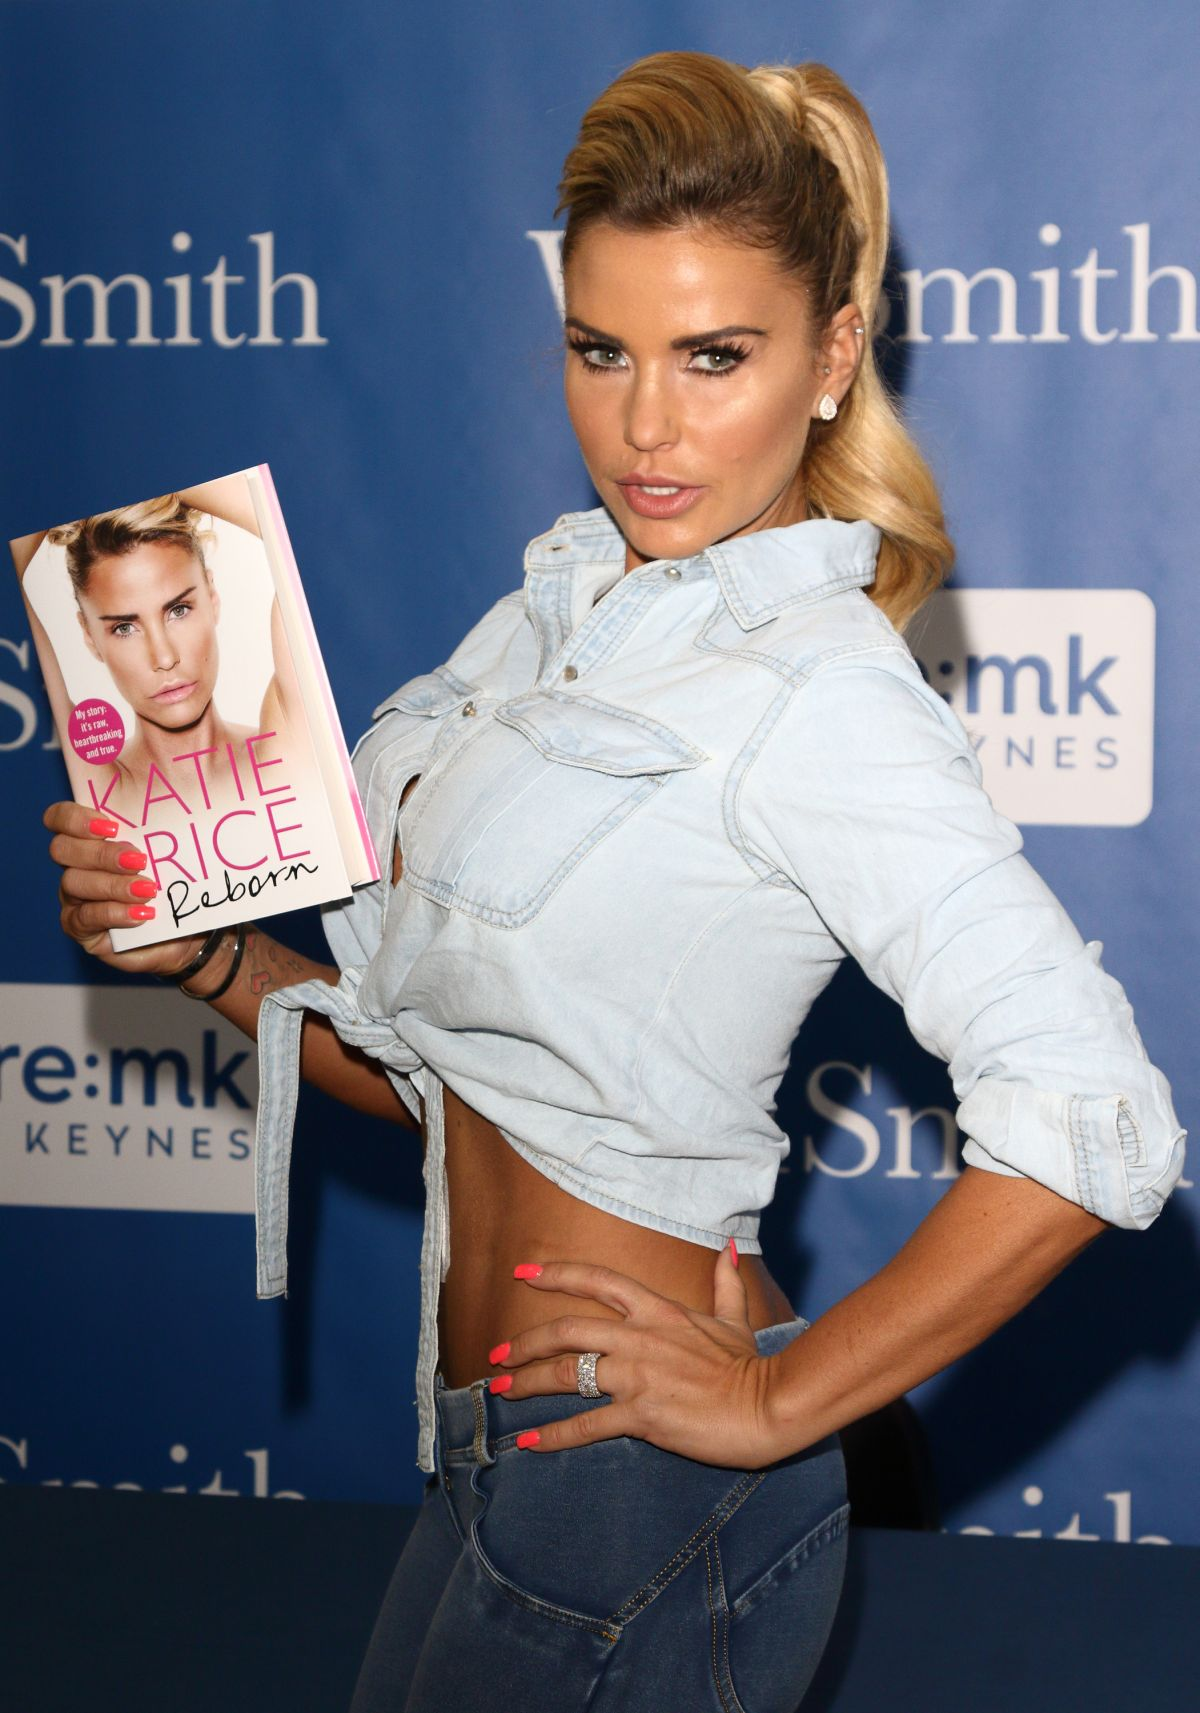 KATIE PRICE at